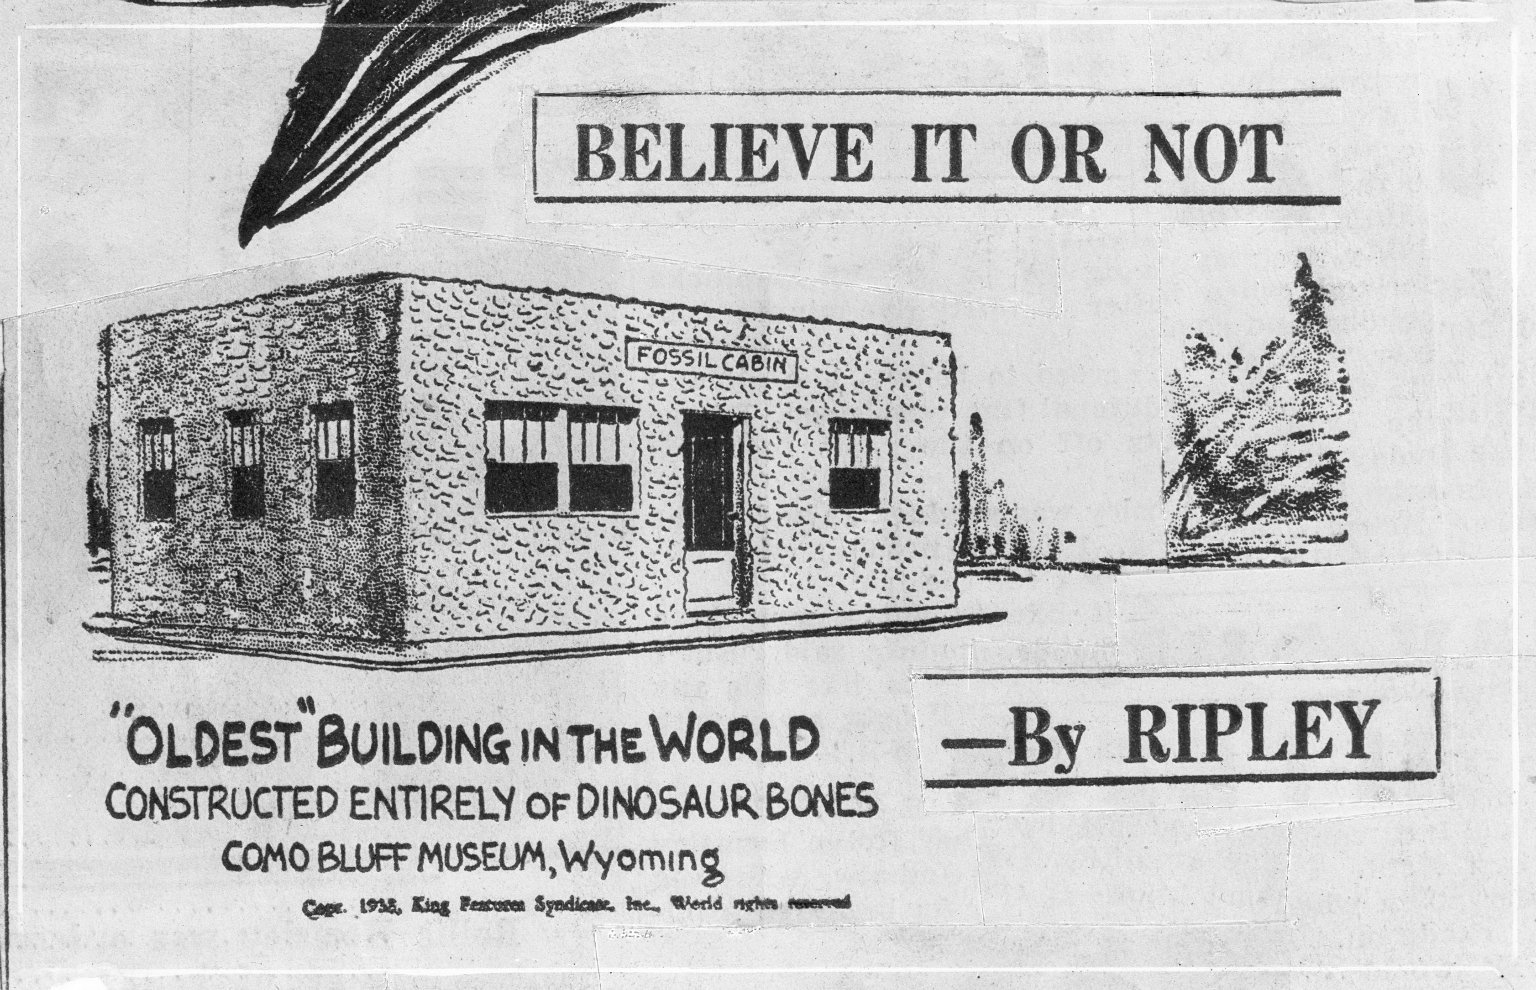 The Fossil Cabin Museum being recognized by Ripley's Believe It or Not.